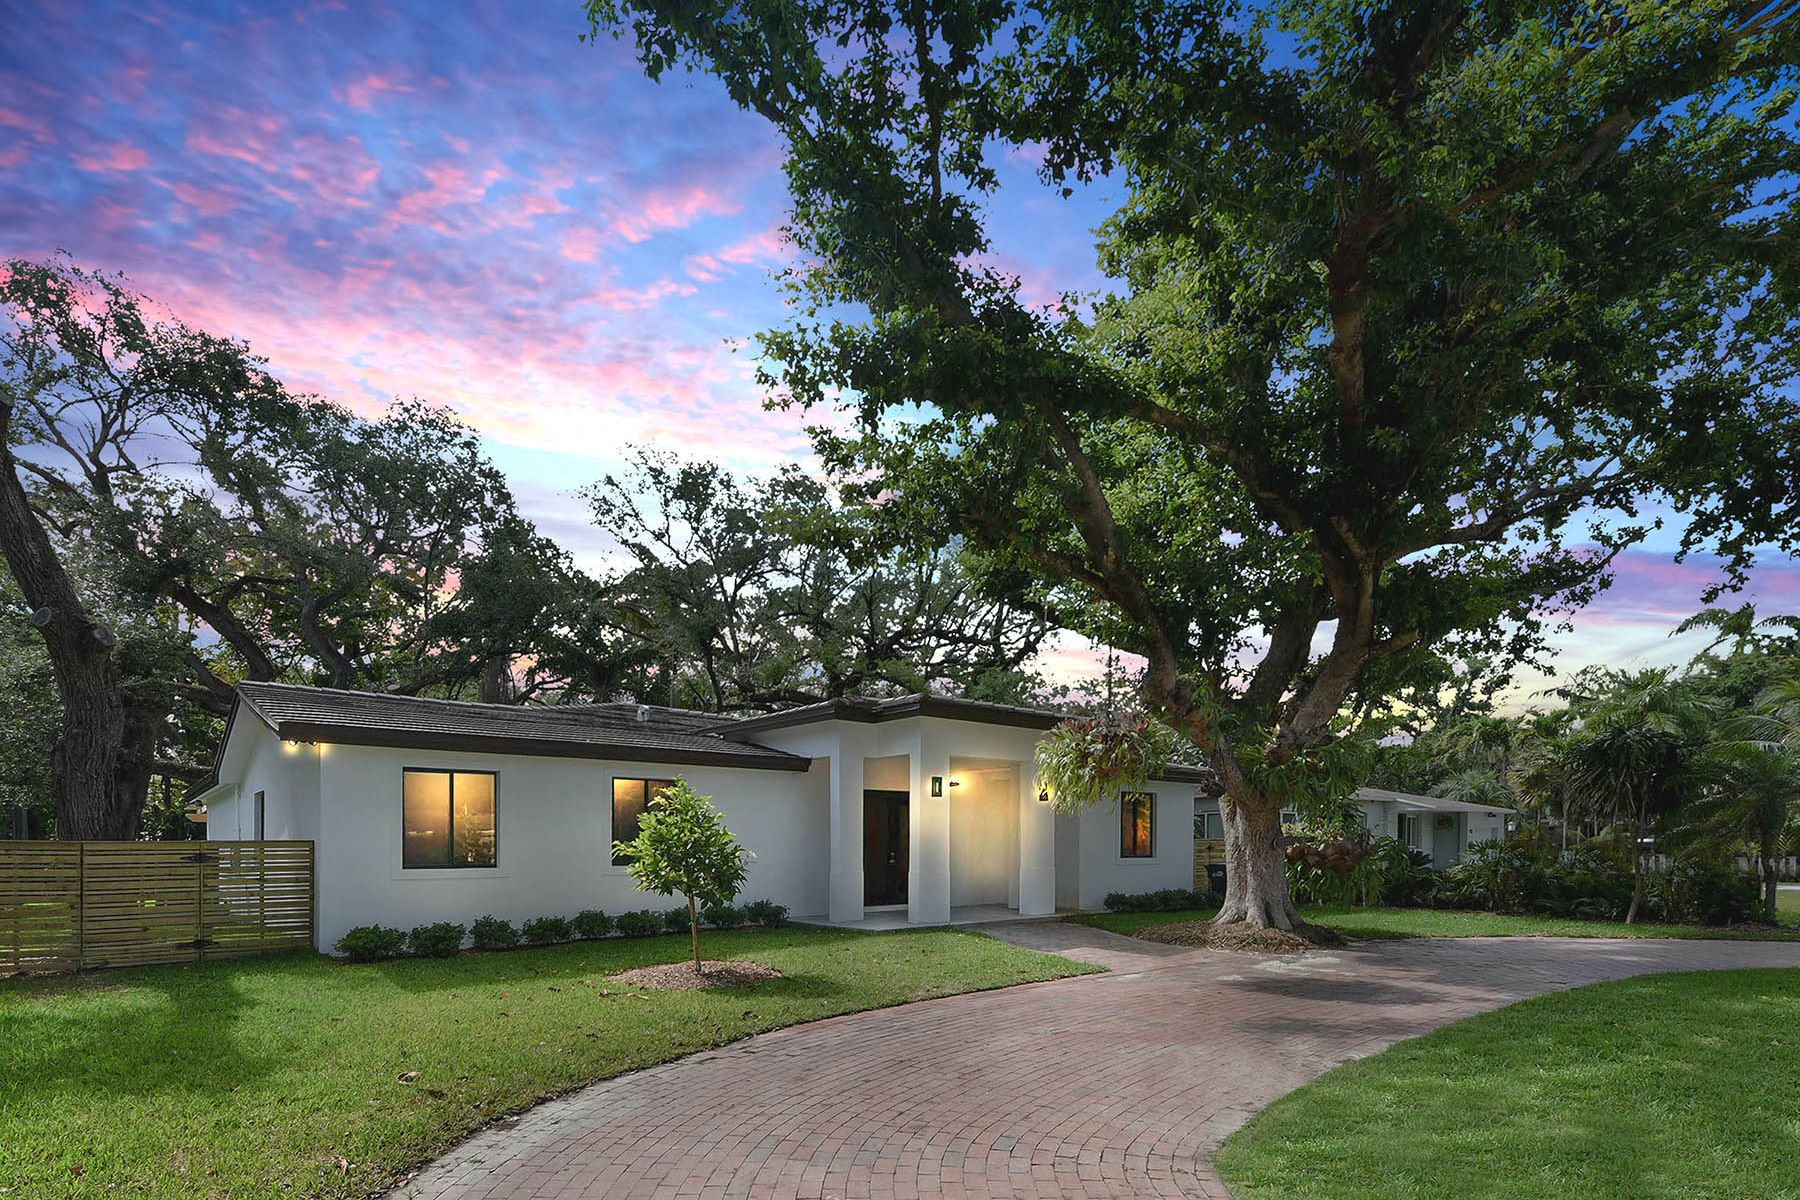 Single Family Home for Sale at 7500 Sw 63 Court 7500 Sw 63 Court South Miami, Florida 33143 United States